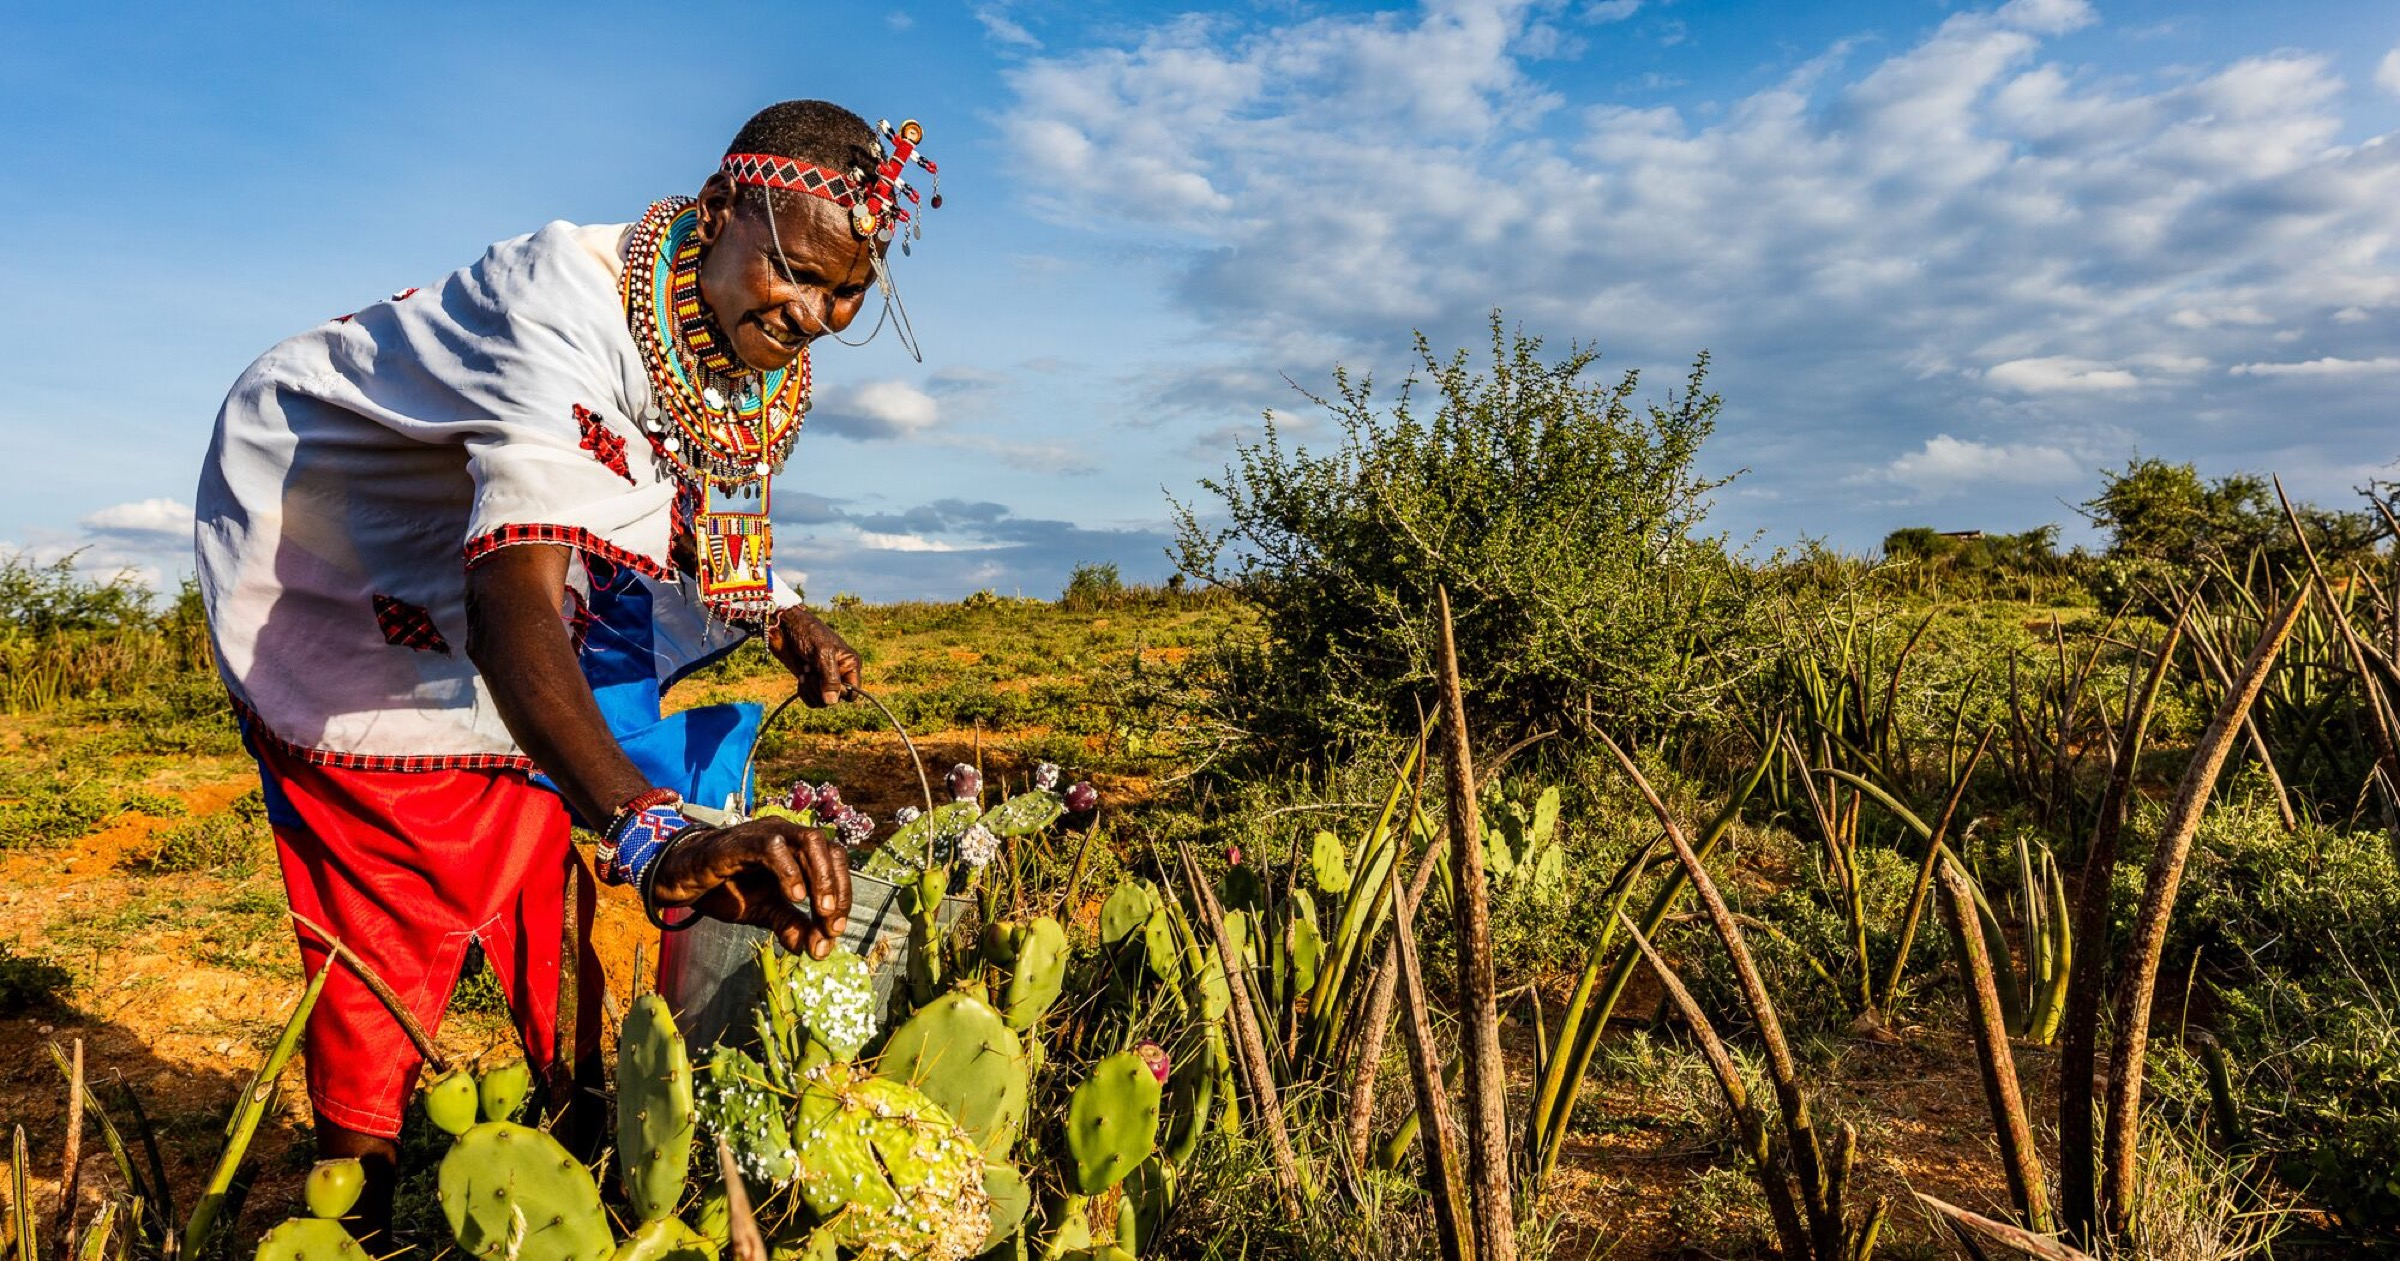 Margaret Nyambura Mamai, a Maasai woman, places cactus pads infested with cochineal insects into healthy (and partially infested) thickets of prickly pear plants on the Laikipia Plateau.